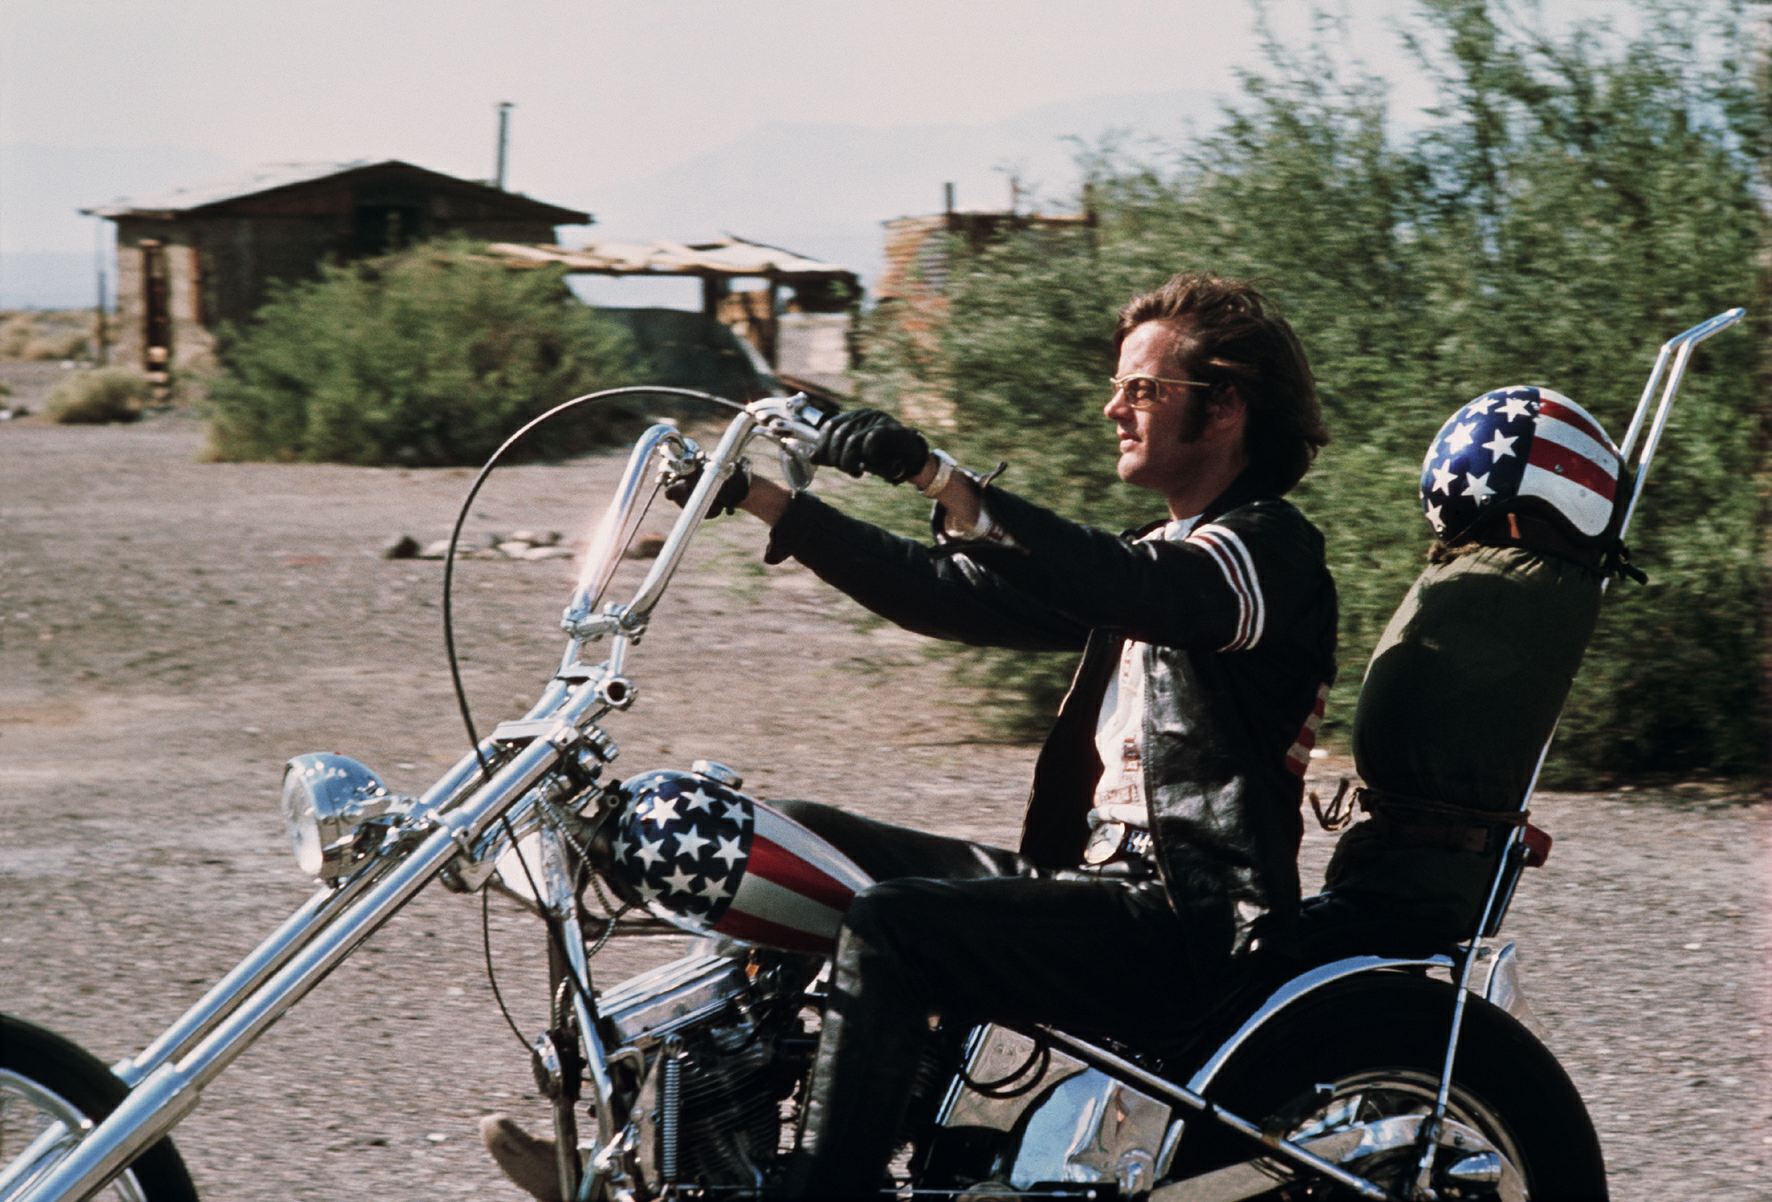 peter-fonda-s-easy-rider-harley-will-be-